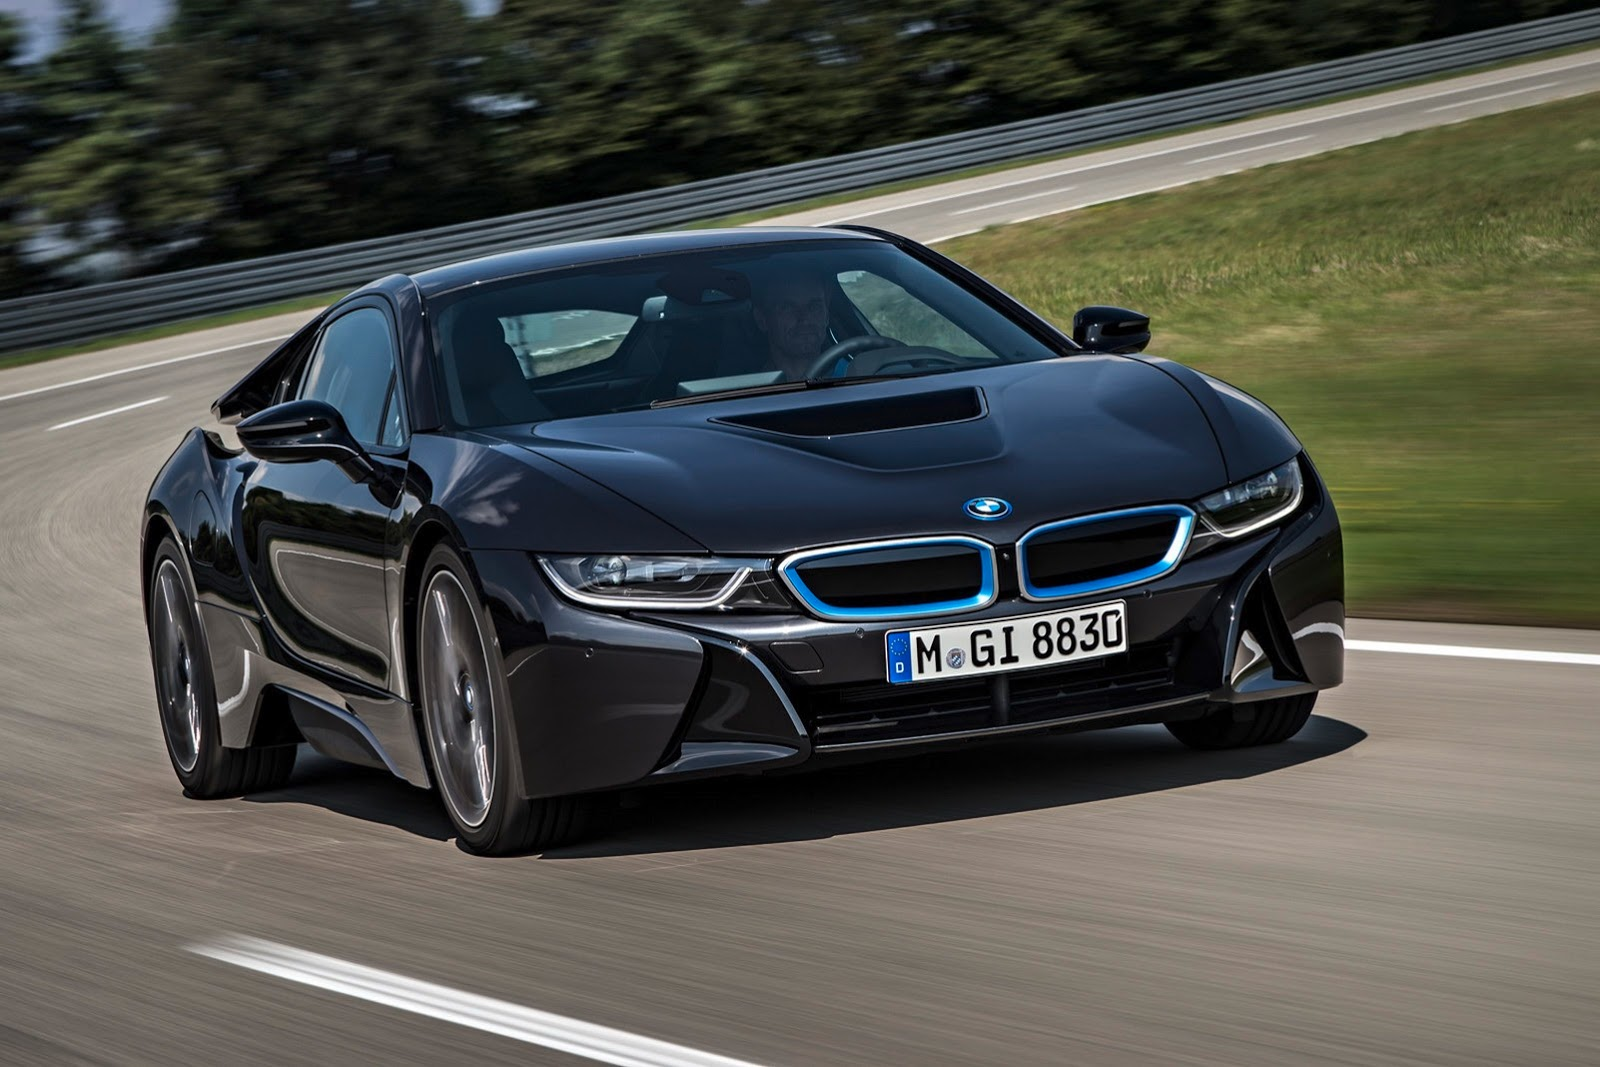 The New Bmw I8 Note It S Formerly Name Was Efficentdynamics As A Concept